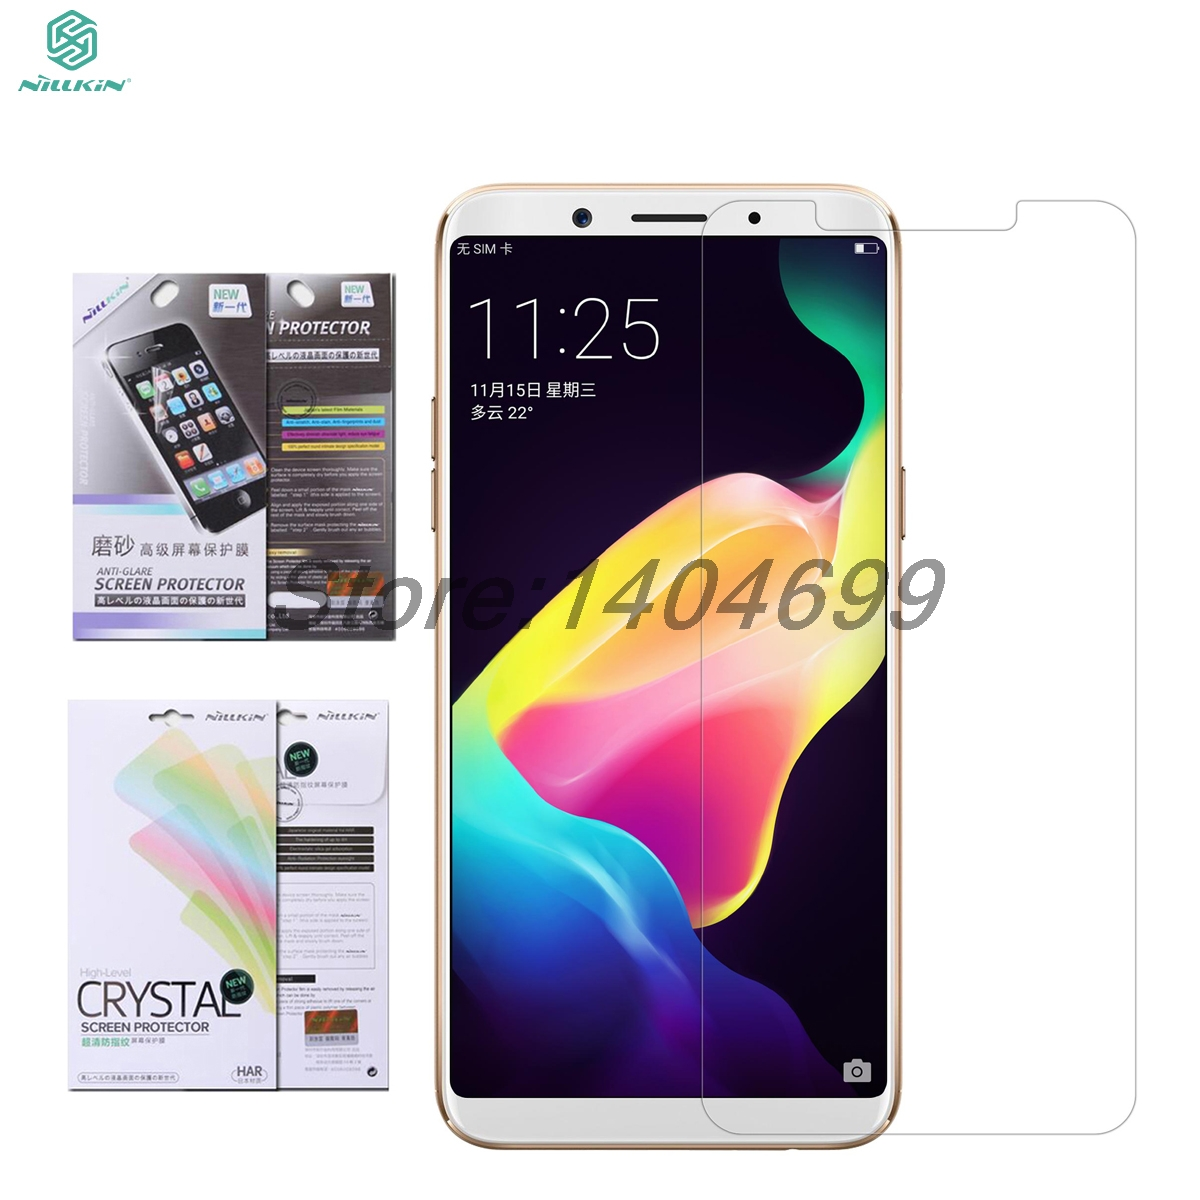 OPPO F5 Screen Protector OPPO F5 Film Clear & Matte Nillkin PET Screen Protector For OPPO F5 (Not Glass)